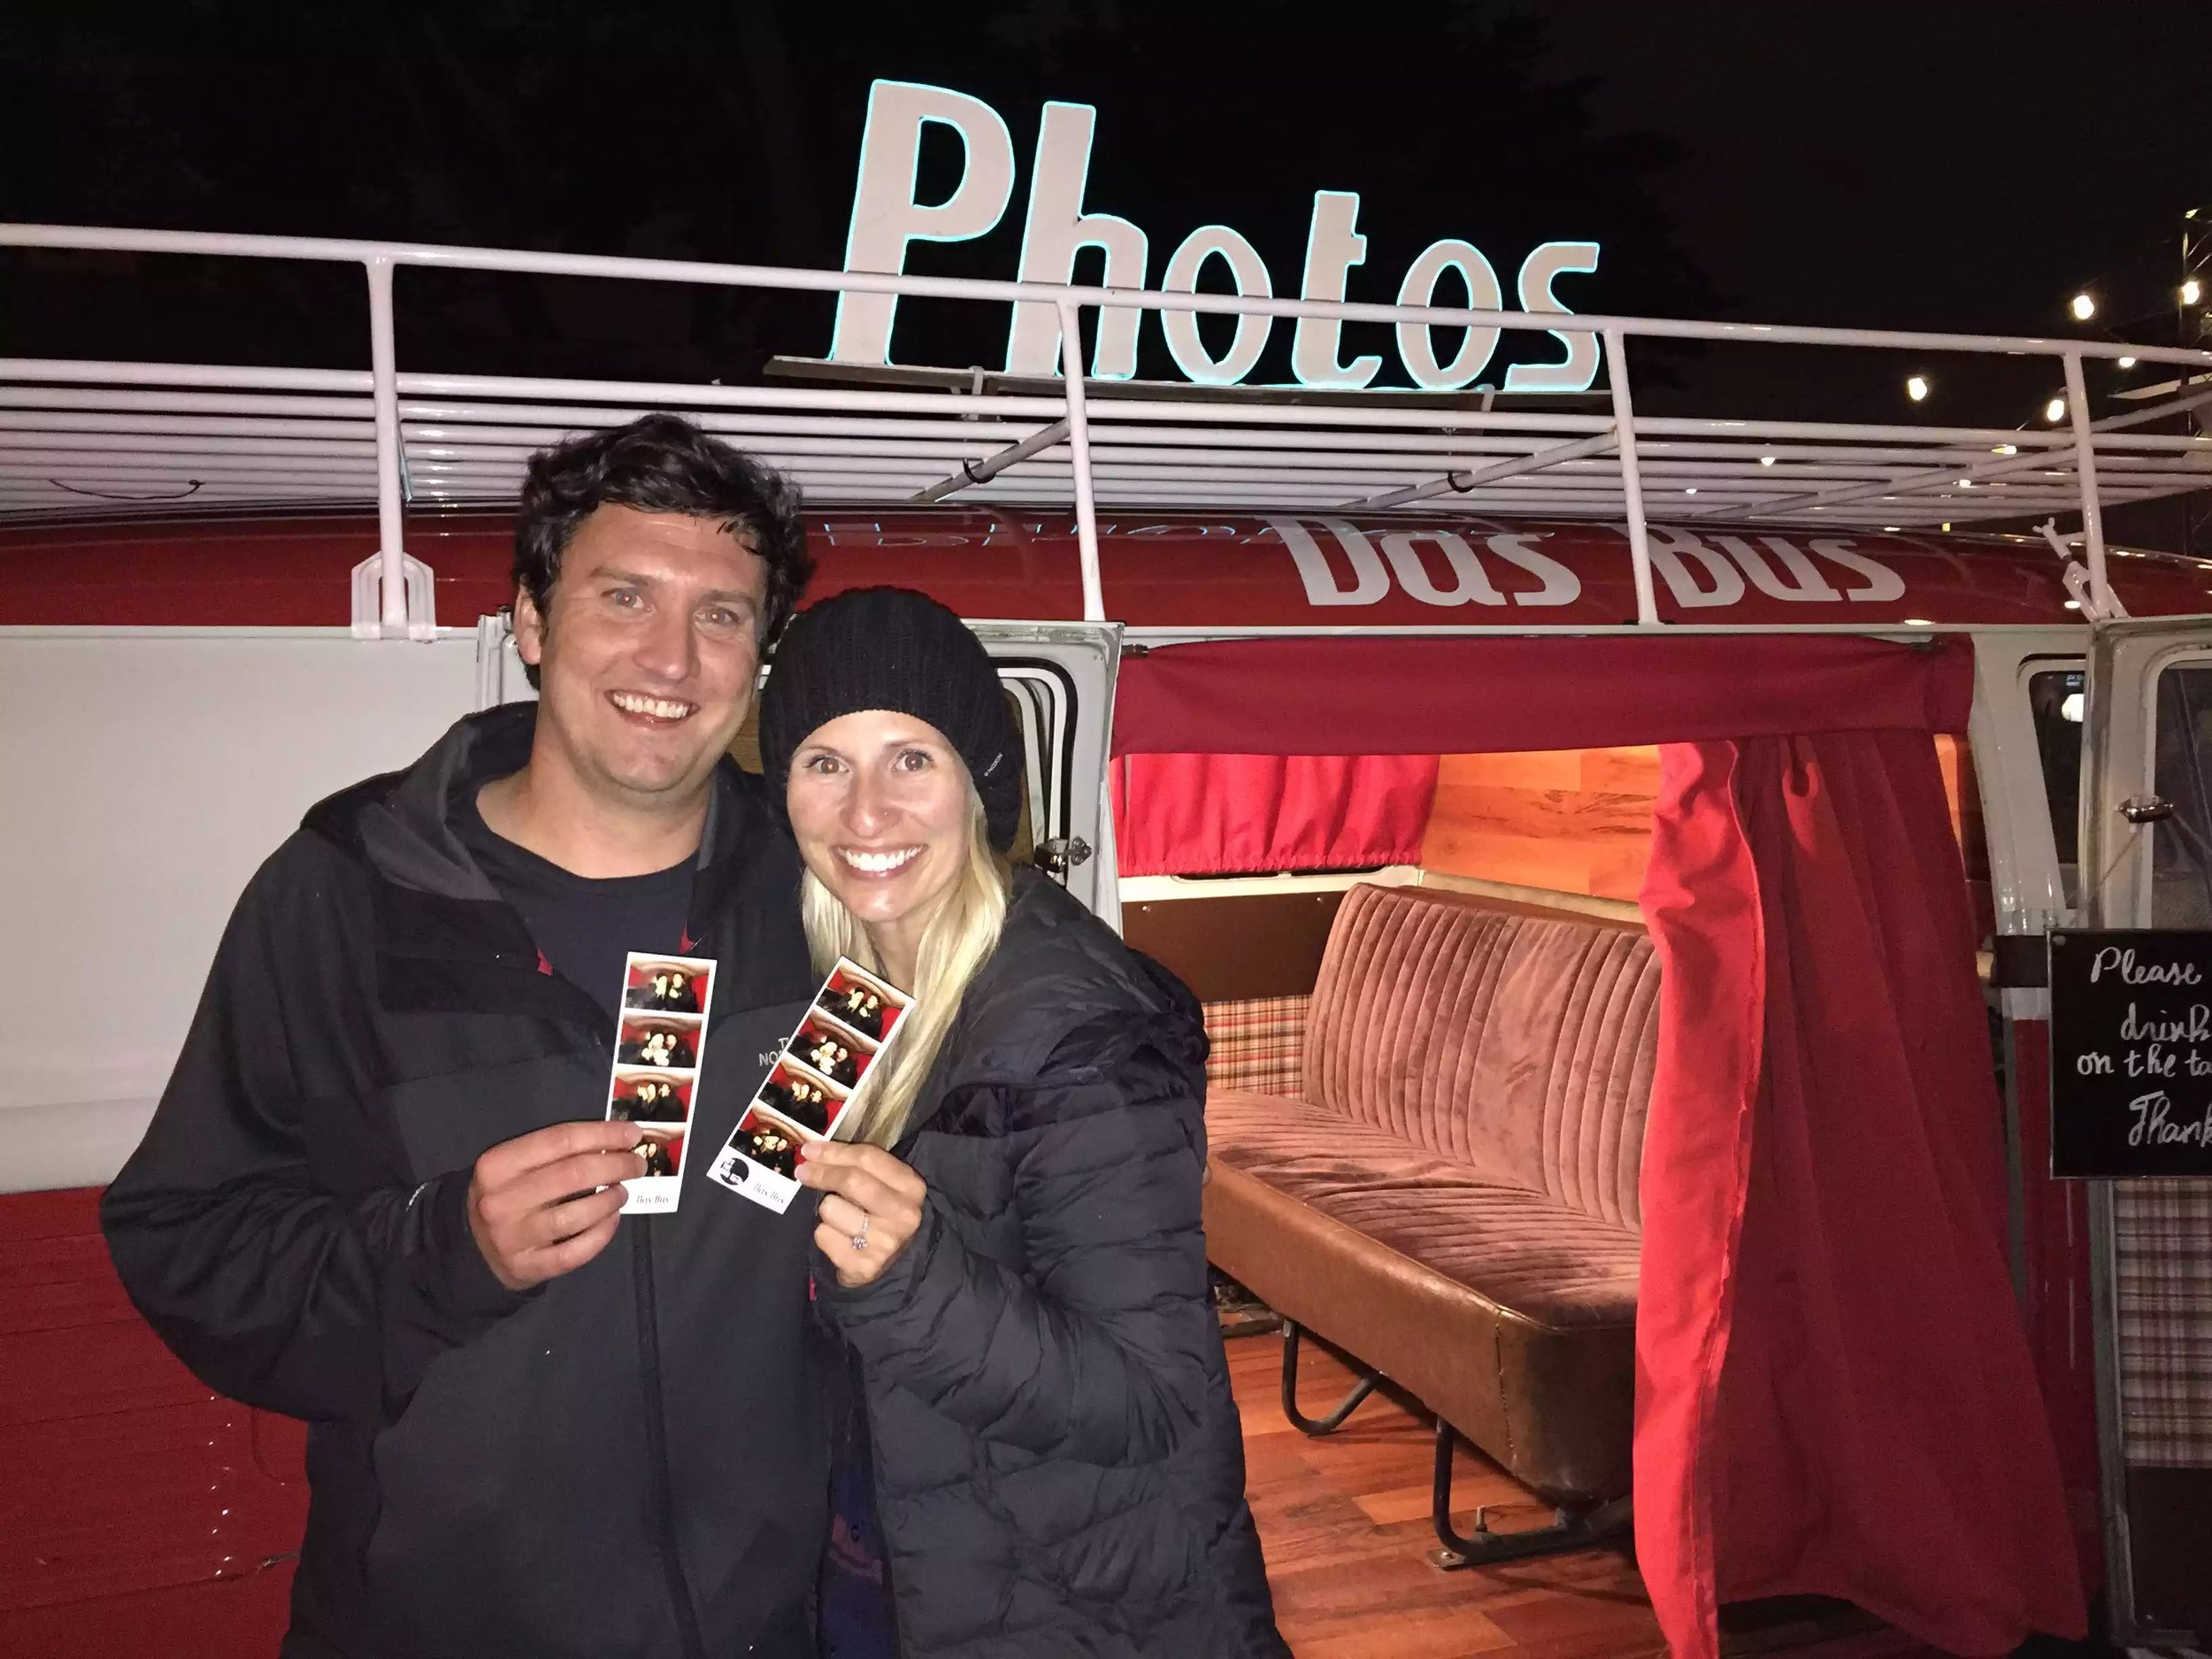 Shawn and Lacey with their engagement photos after Shawn popped the question in Das Bus!